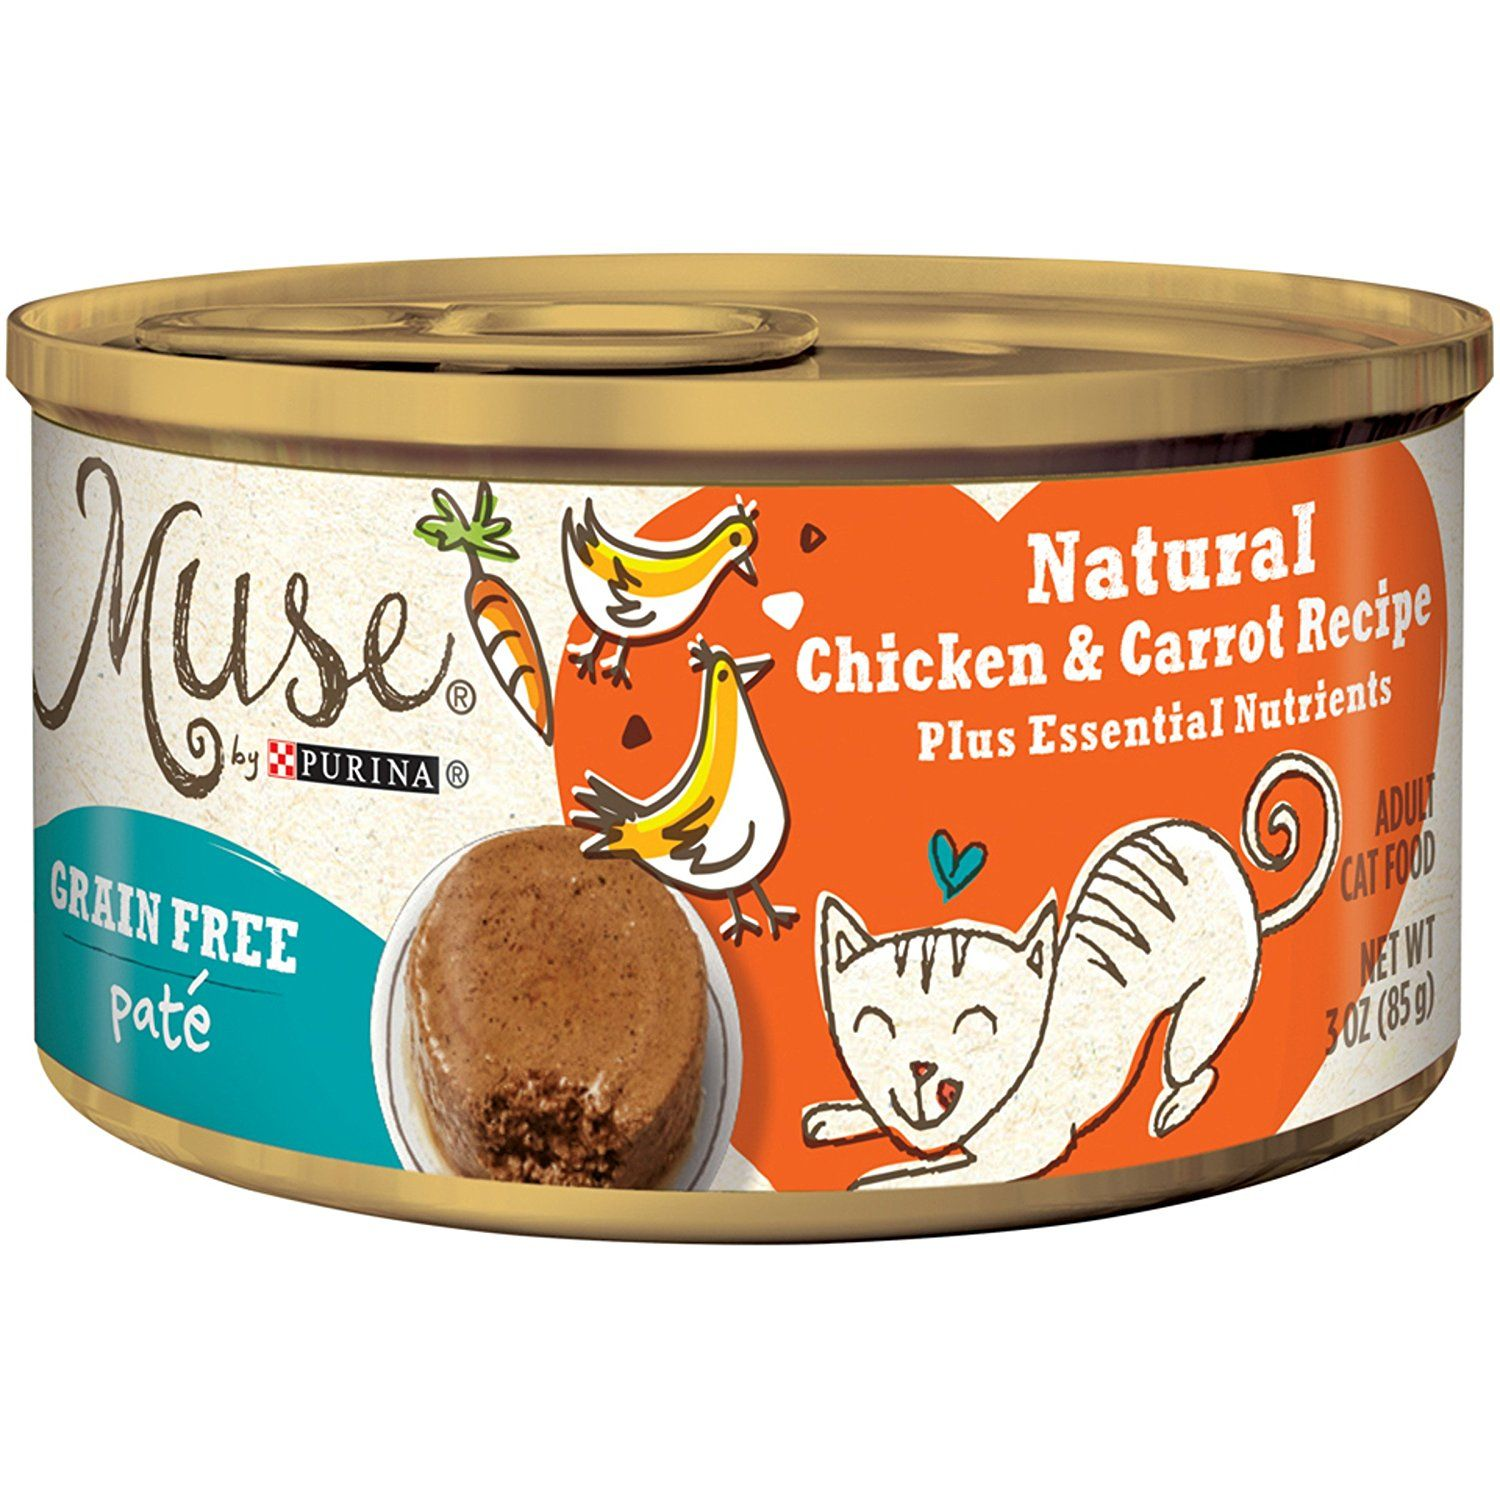 Muse by Purina Natural Grain Free Pate Wet Cat Food Pate